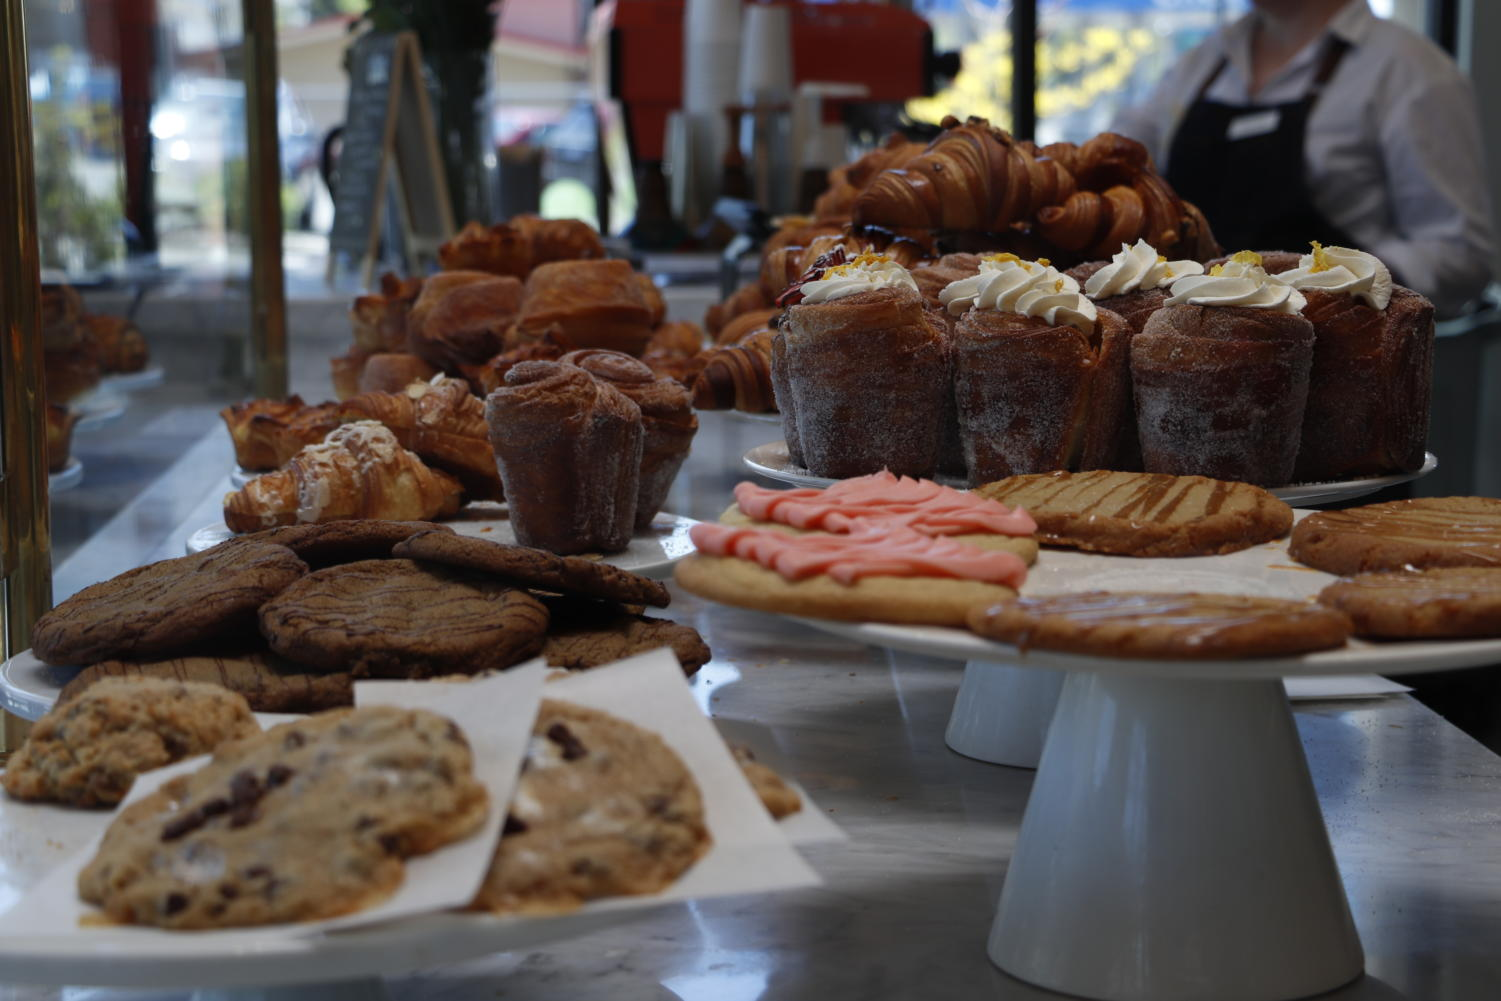 Beaumont Bakery & Cafe has a large selection of pastries.